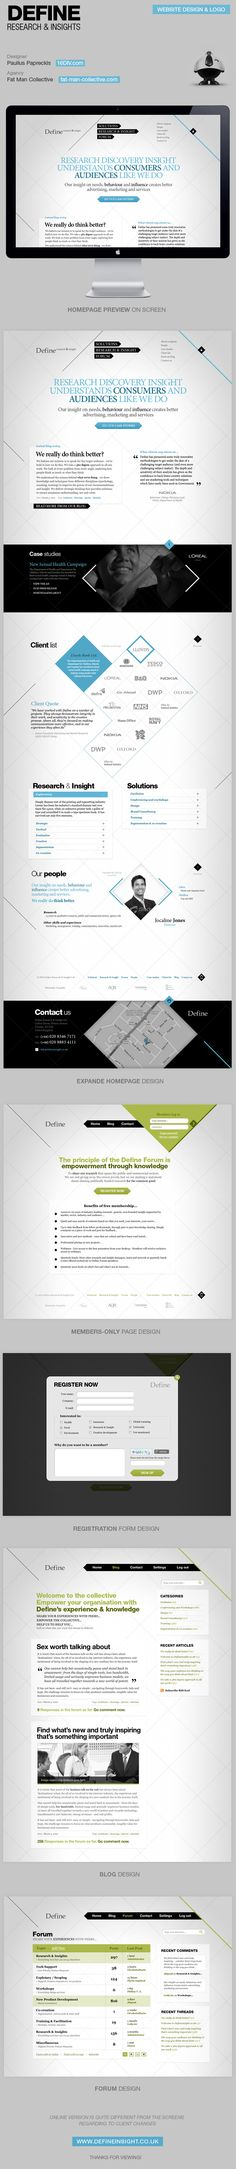 Define research & insights web design by Paulius Papreckis, via Behance